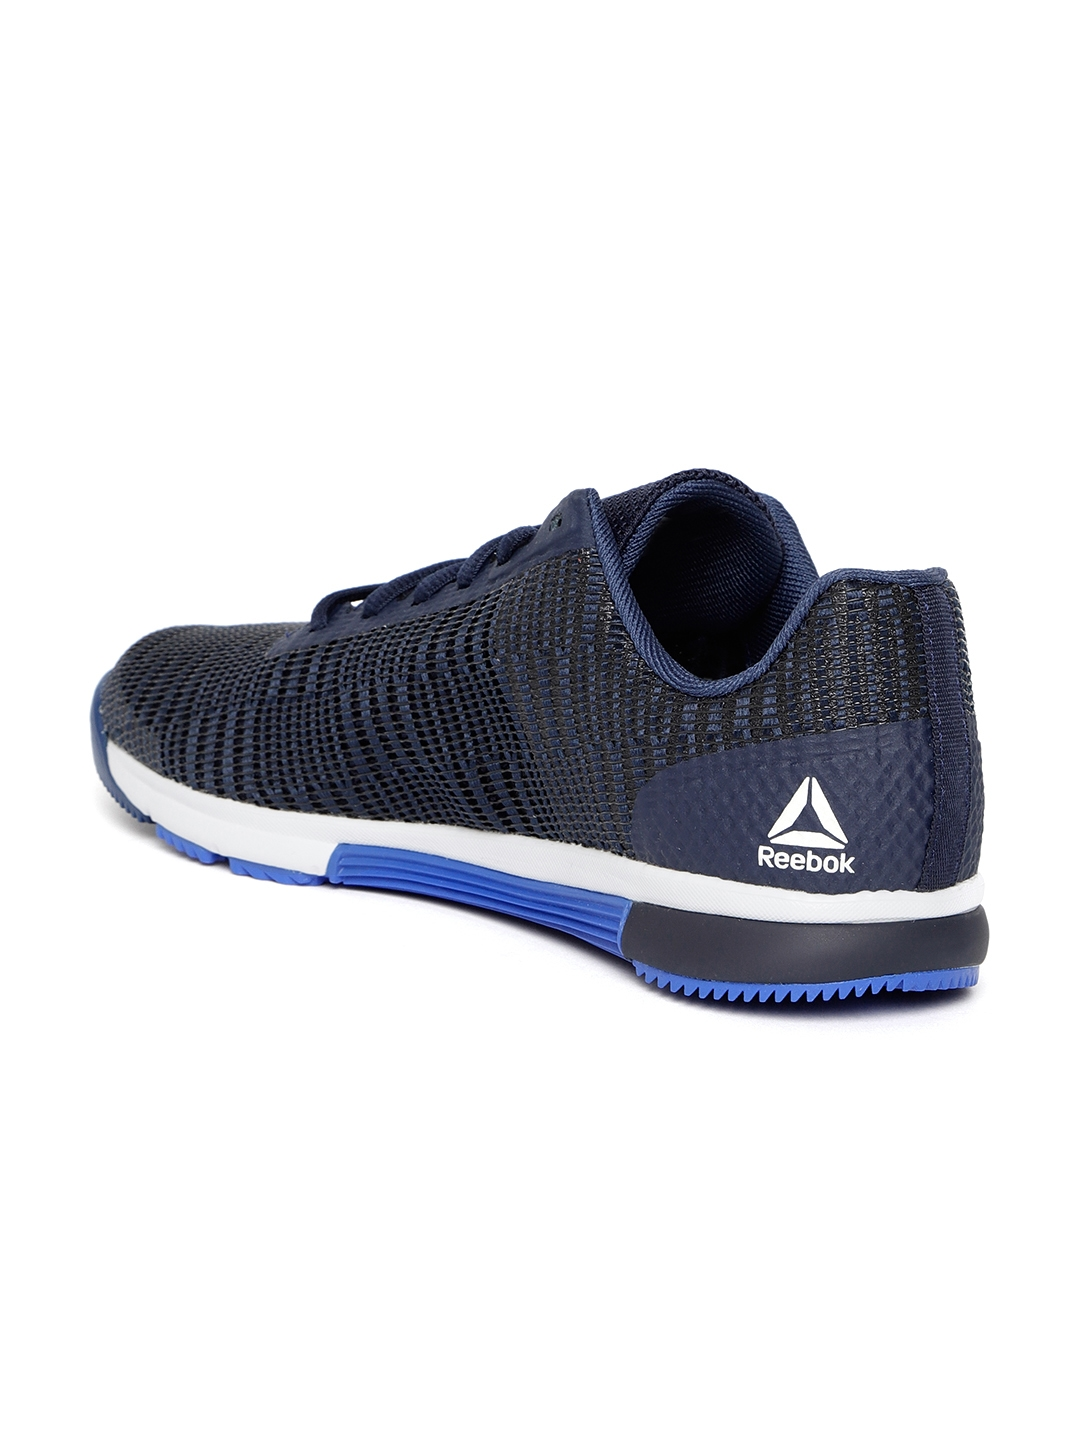 3e9aa2a9b04 Buy Reebok Men Navy Speed Flexweave Training Shoes - Sports Shoes ...